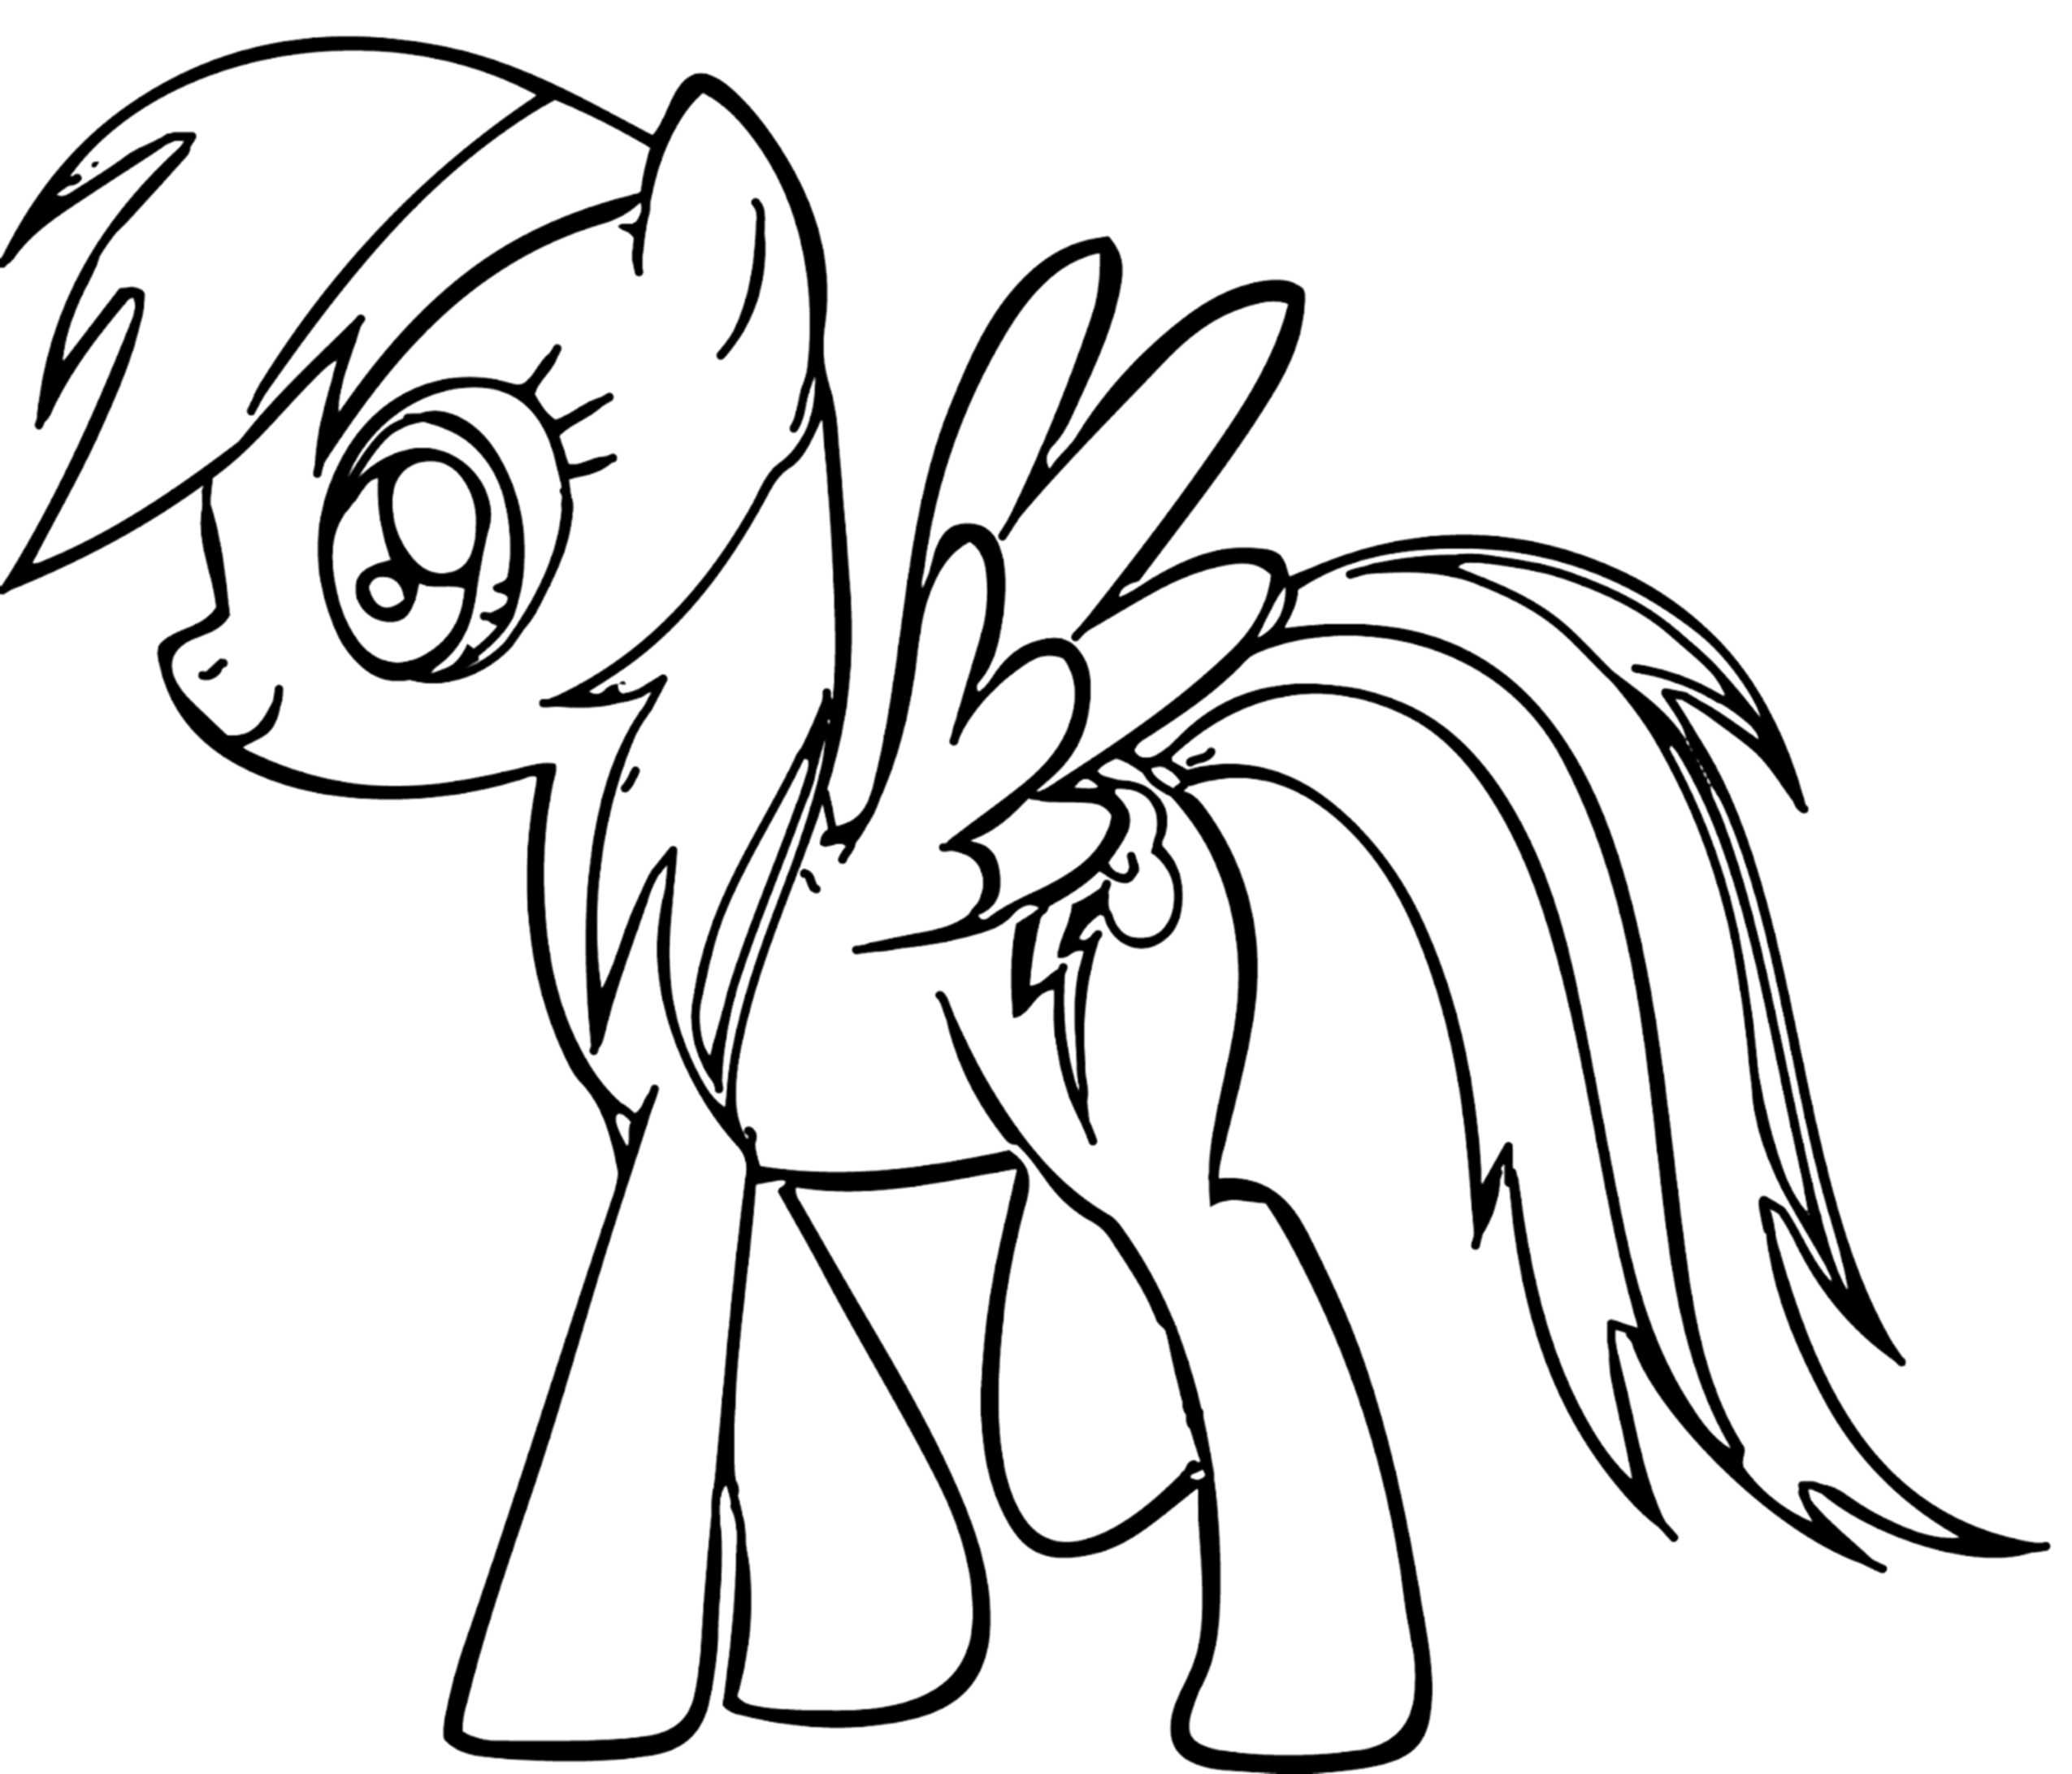 pictures of rainbow dash my little pony my little pony coloring pages rainbow dash pony coloring dash my rainbow little pony of pictures